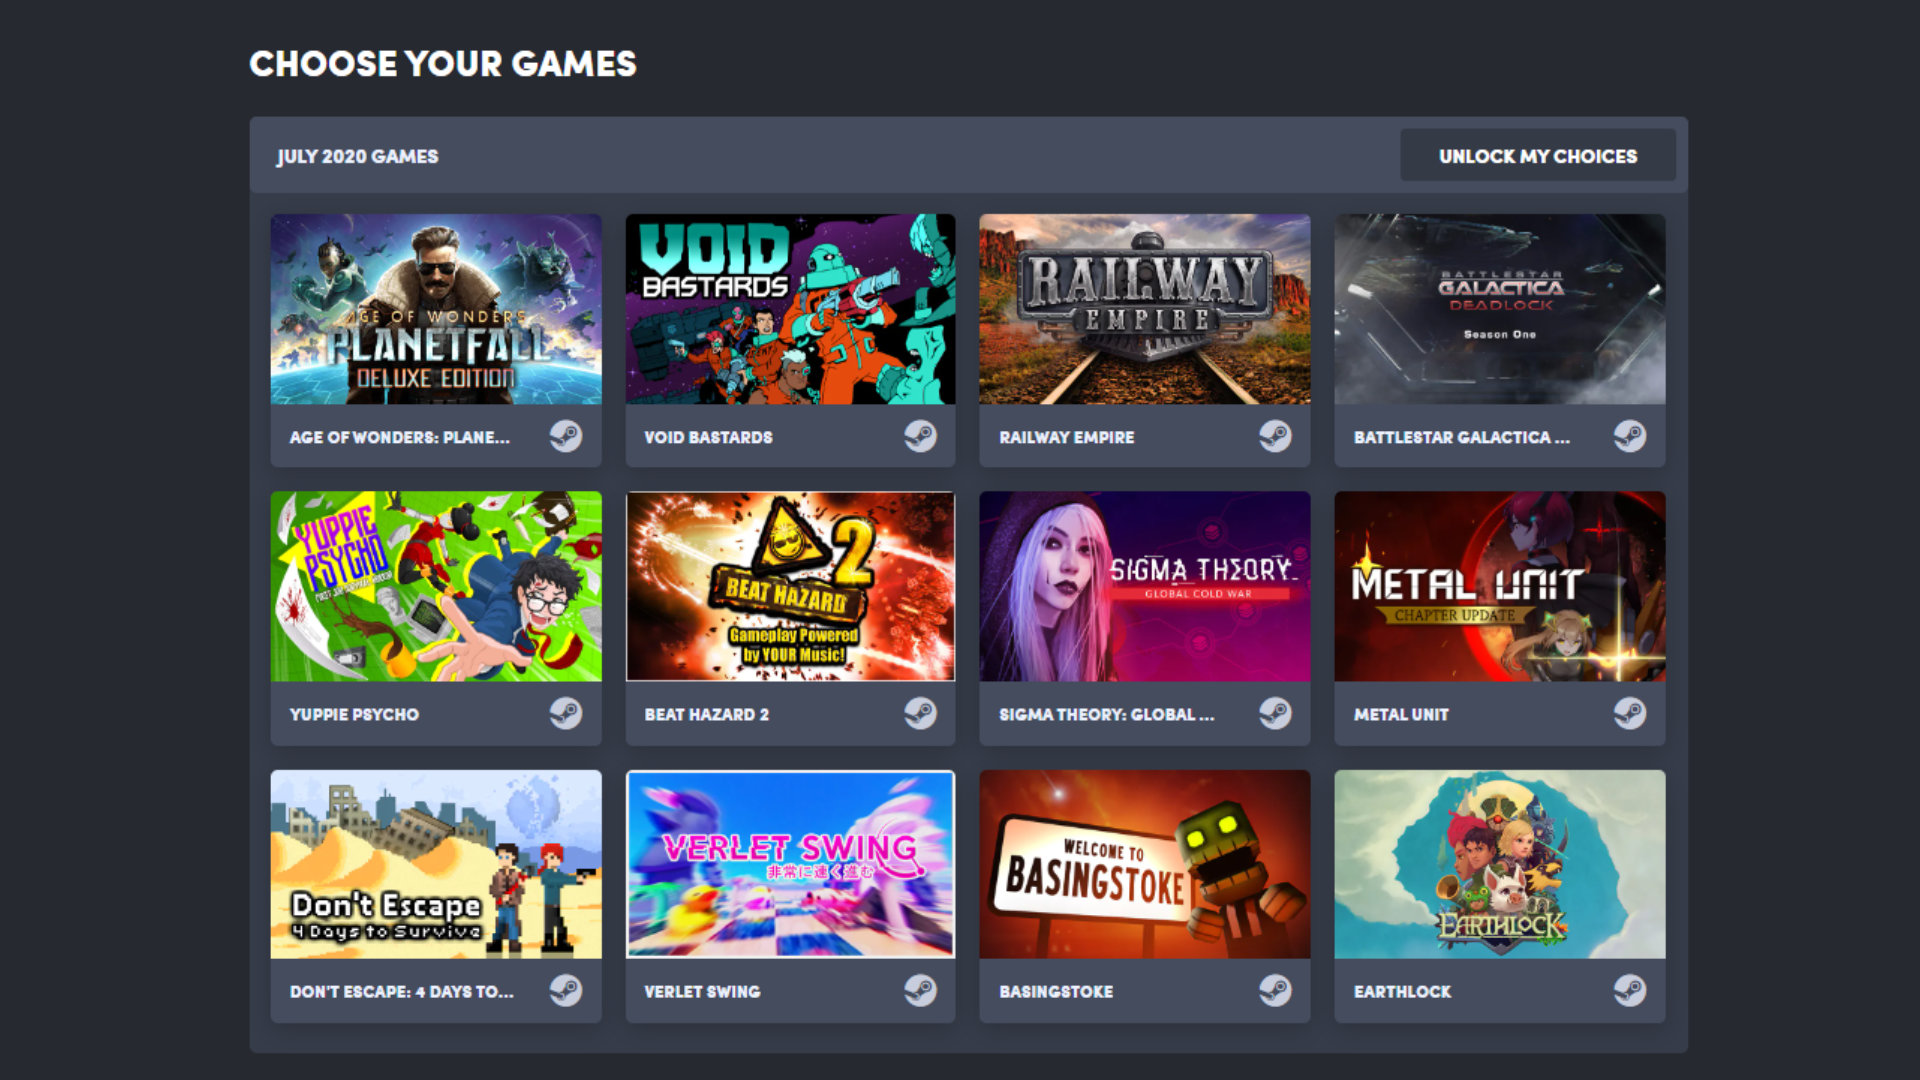 Quelle: Humble Bundle (Choice) - Juli 2020 Auswahl